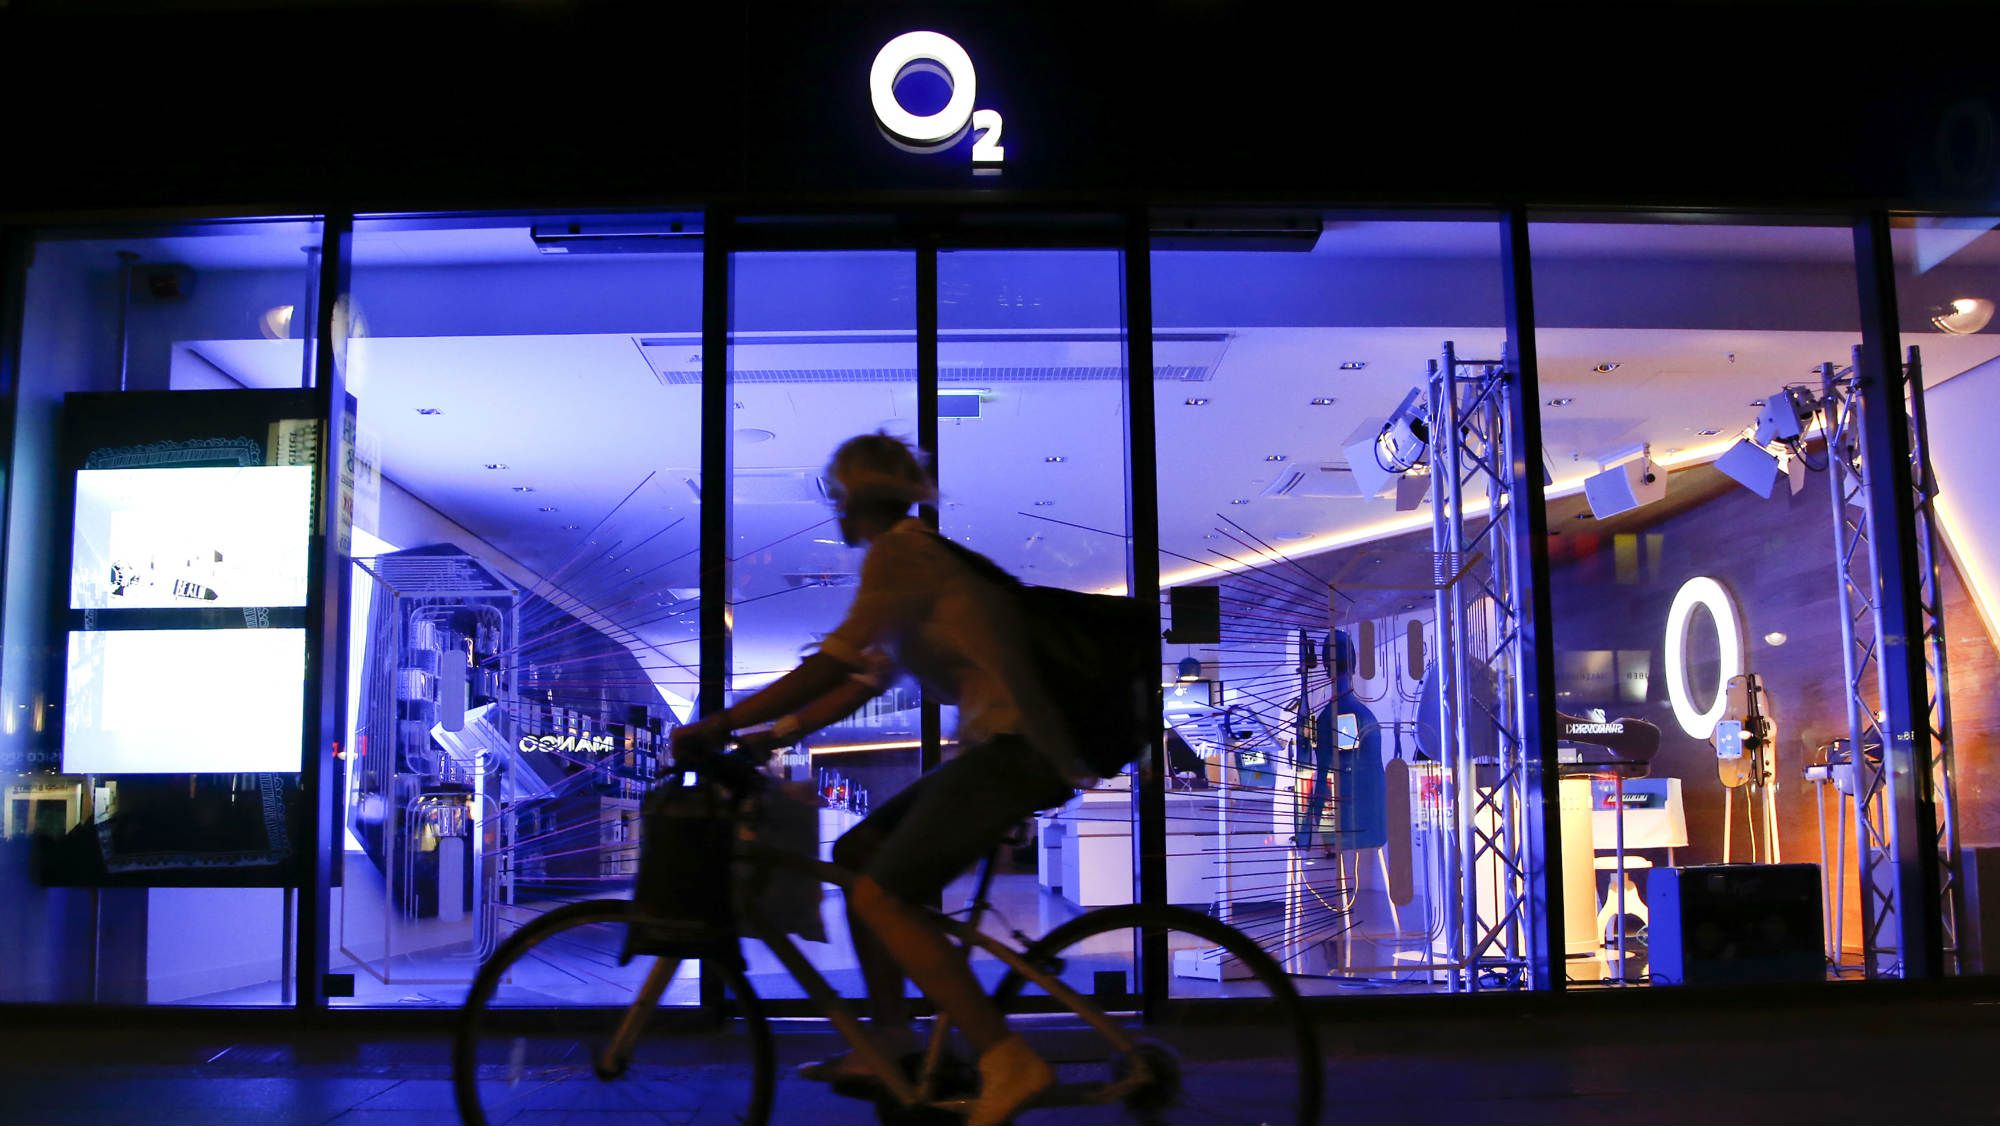 A cyclist passes the front of a O2 Deutschland shop in Berlin July 23, 2013. E-Plus, the German mobile phone operator, expects regulators may demand remedies in order to approve its sale to Telefonica Deutschland for some 8.1 billion euros ($10.7 billion), its CEO told Reuters.REUTERS/Fabrizio Bensch (GERMANY - Tags: BUSINESS TELECOMS)